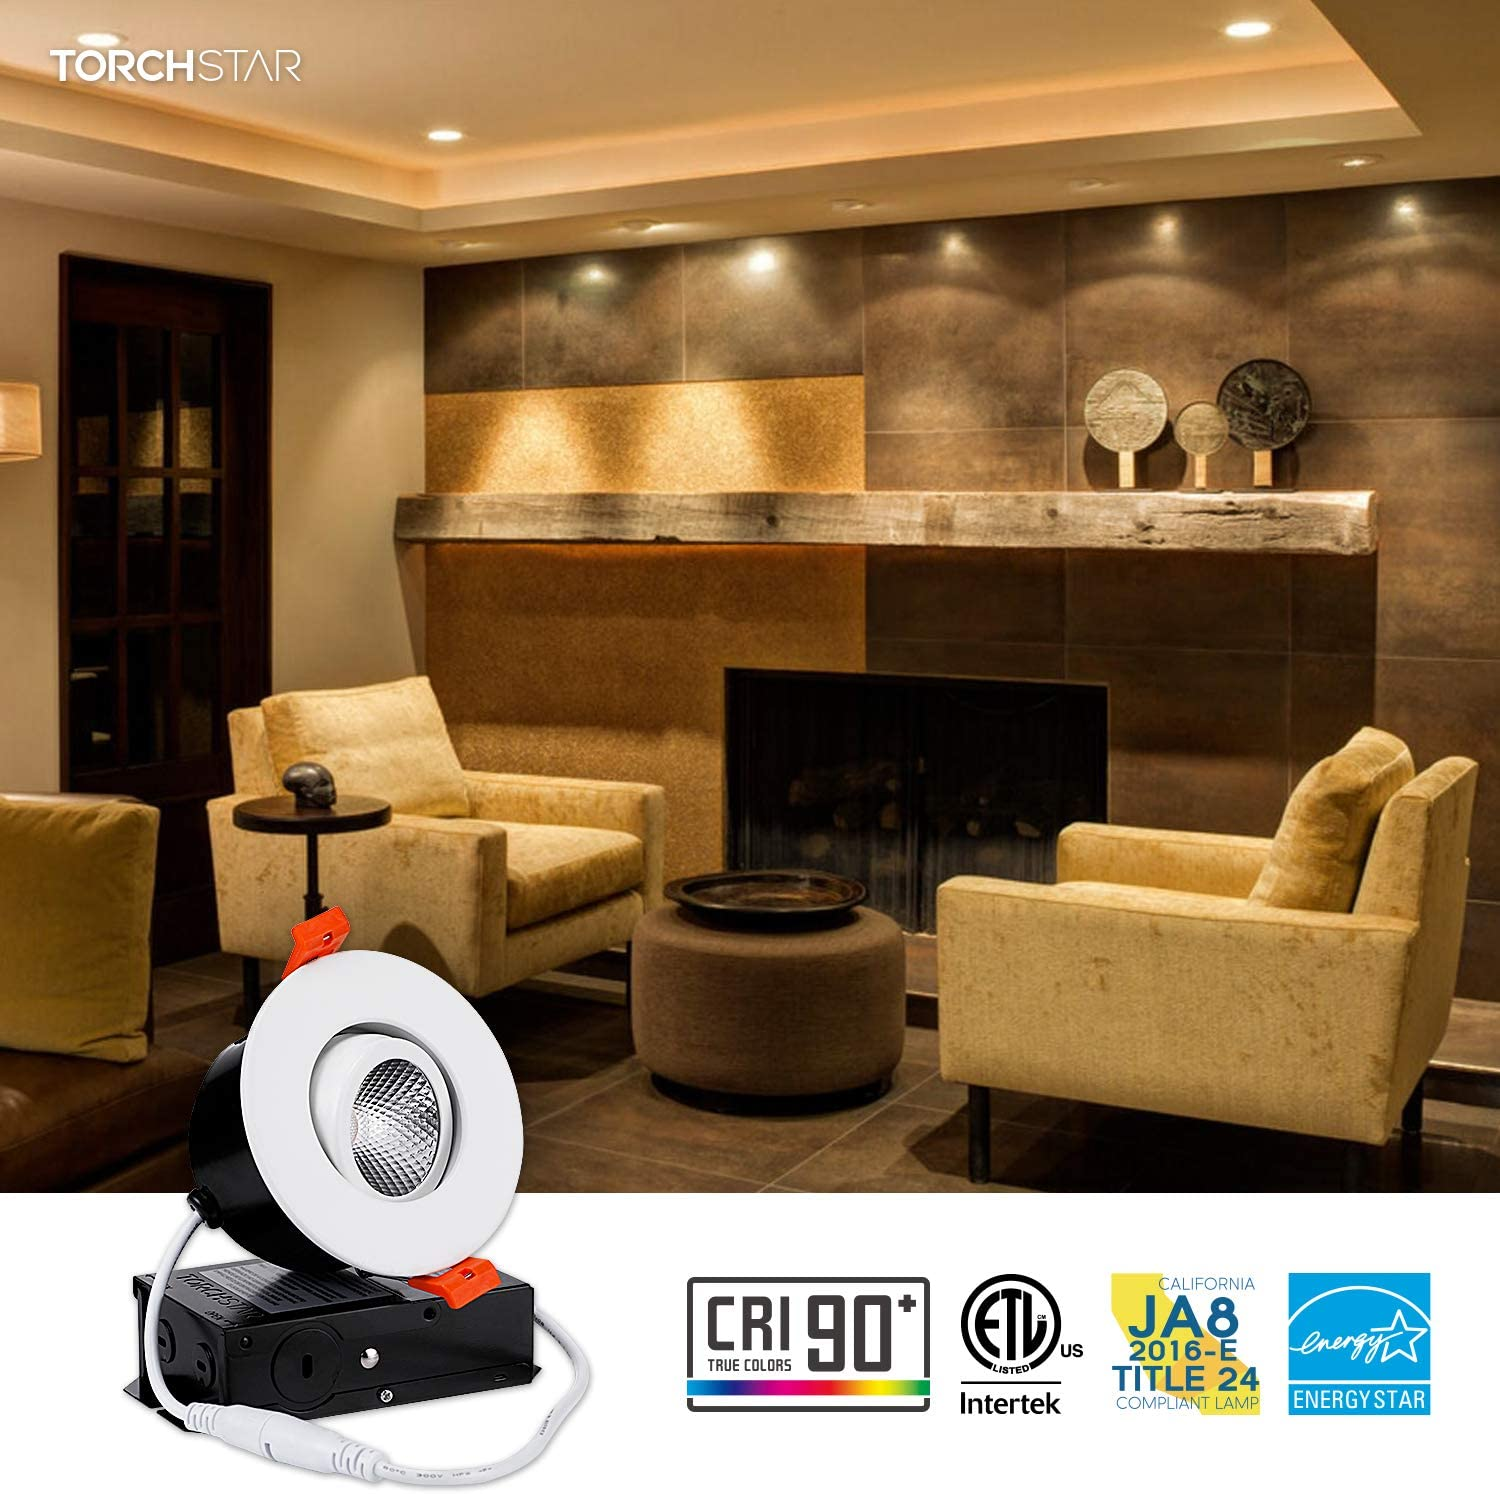 TORCHSTAR 3 Inch Gimbal LED Dimmable Recessed Light with J-Box 5 Years Warranty Airtight Oil Rubbed Bronze ETL//Energy Star//JA8//Title 24 7W CRI 90+ 500lm 50W Eqv. 2700K Soft White Pack of 6